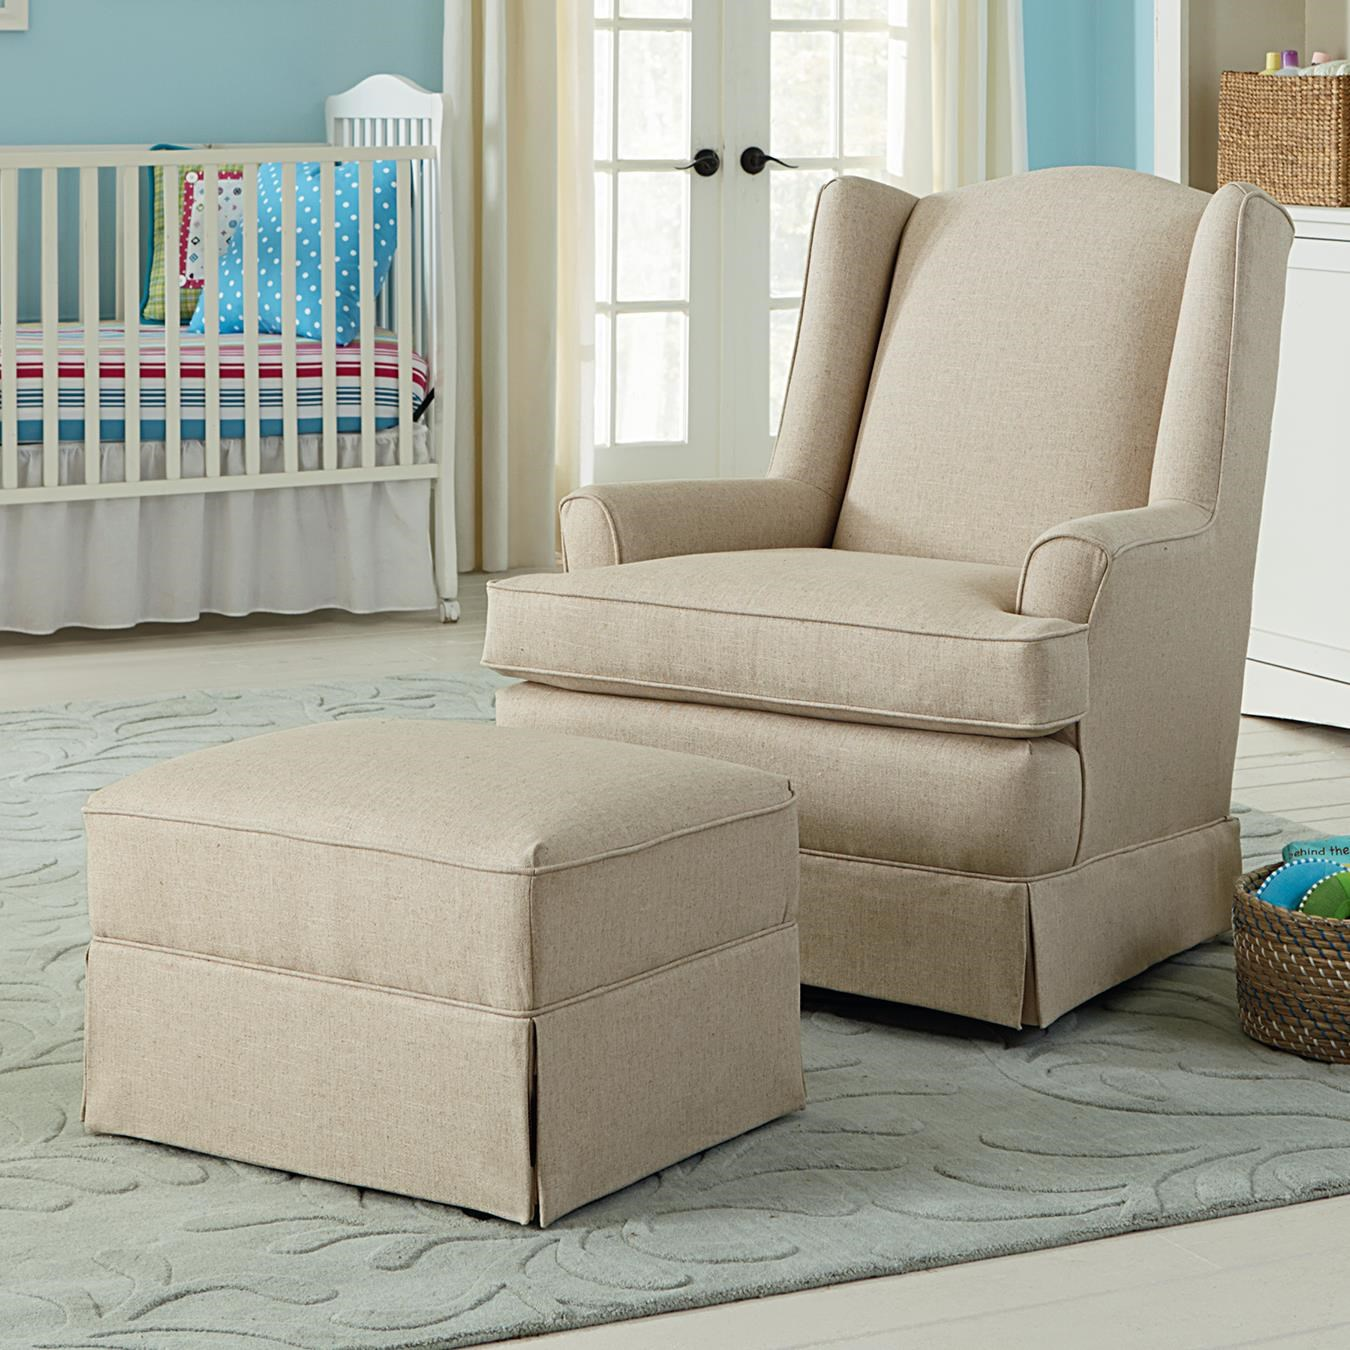 Best Chairs Storytime Series Storytime Swivel Chairs And Ottomans Natasha  Swivel Glider Chair And Gliding Ottoman